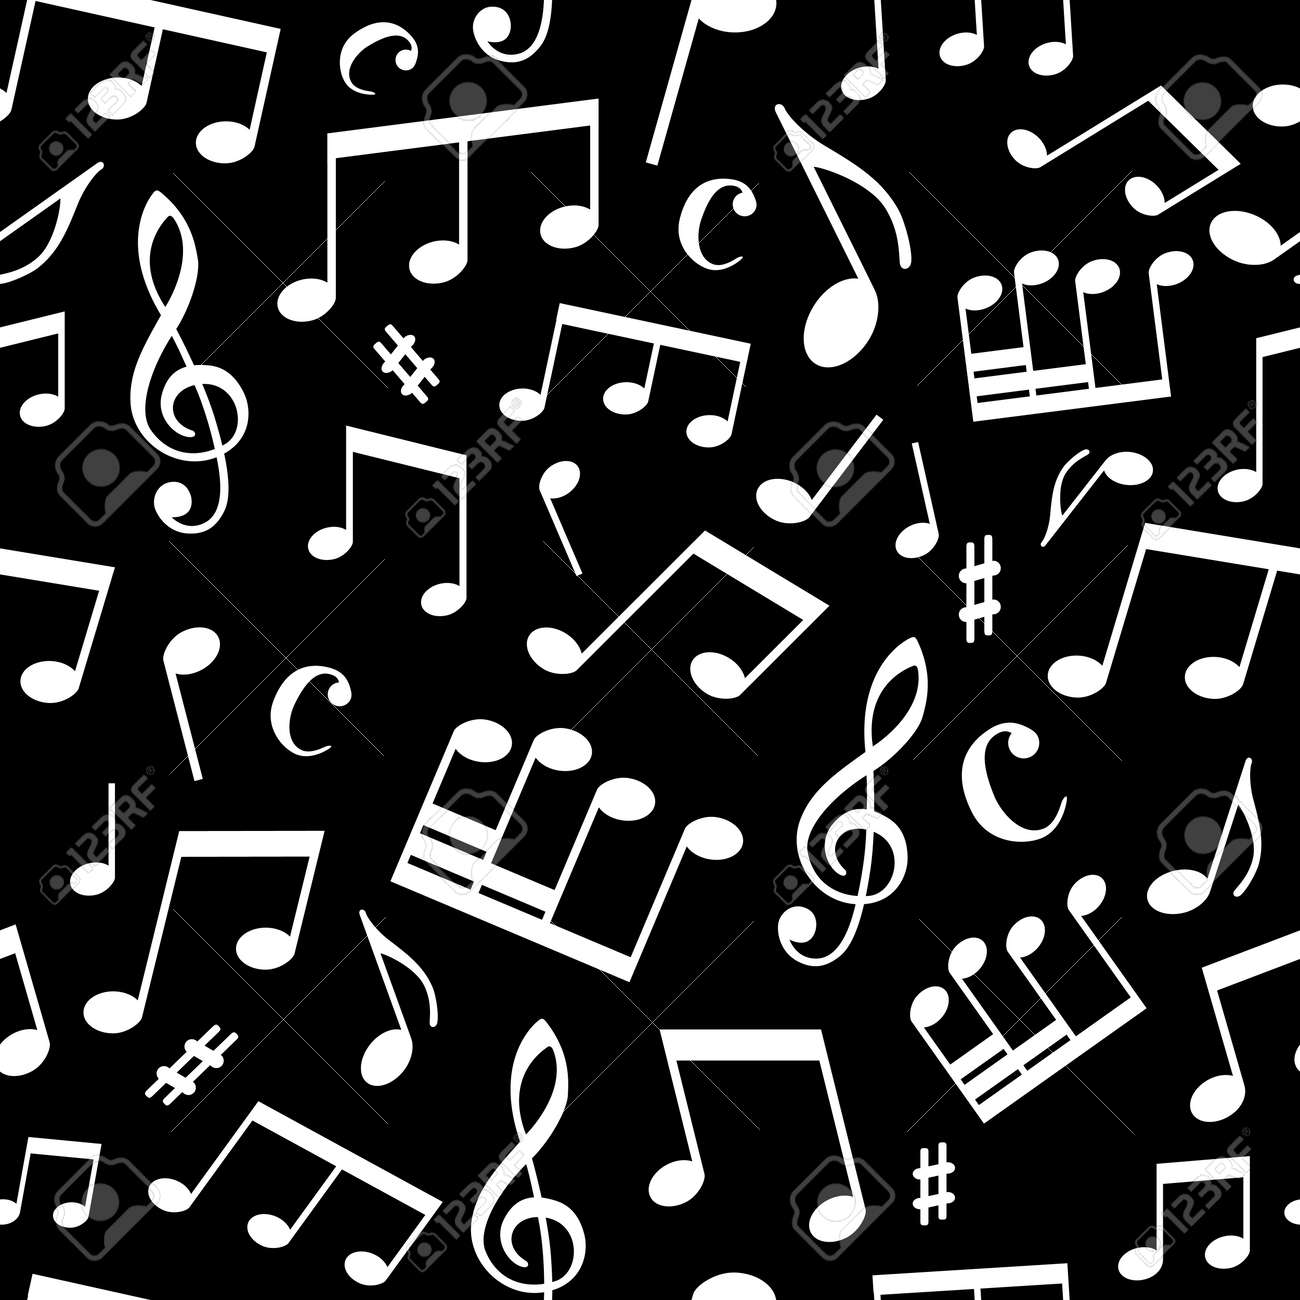 Best Wallpaper Music Black And White - 33673671-white-music-elements-on-black-background-seamless-square-pattern-can-be-used-for-wallpapers-web-page  Pic_486535.jpg